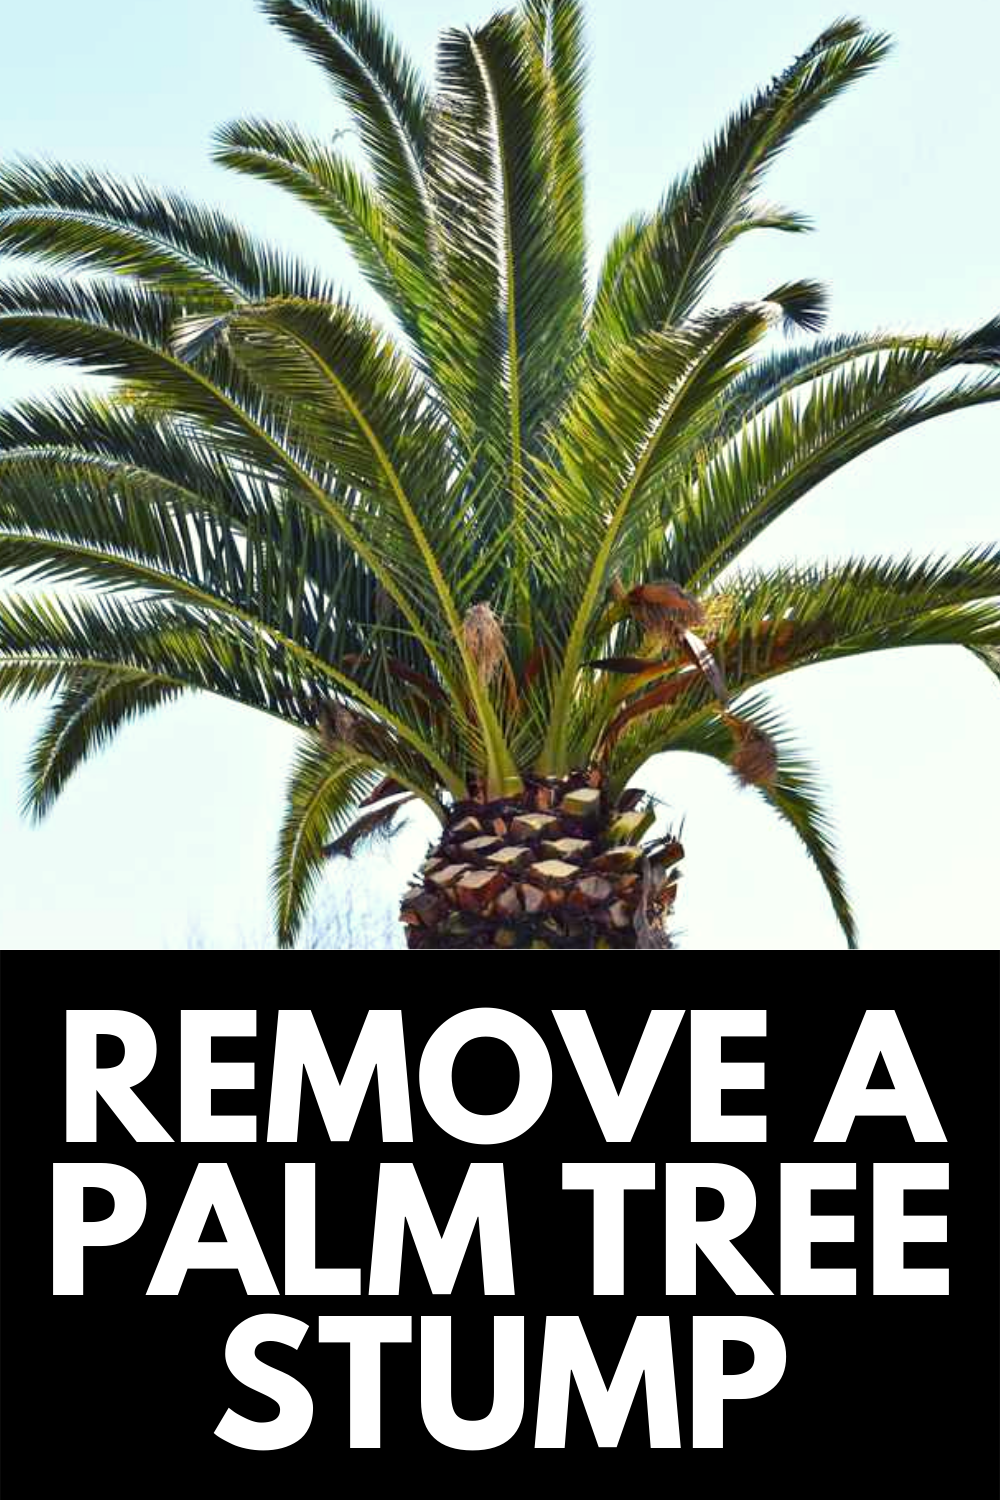 How To Remove A Large Stump Yourself A Simle Technique Tree Stump Stump Removal Removing Tree Stumps